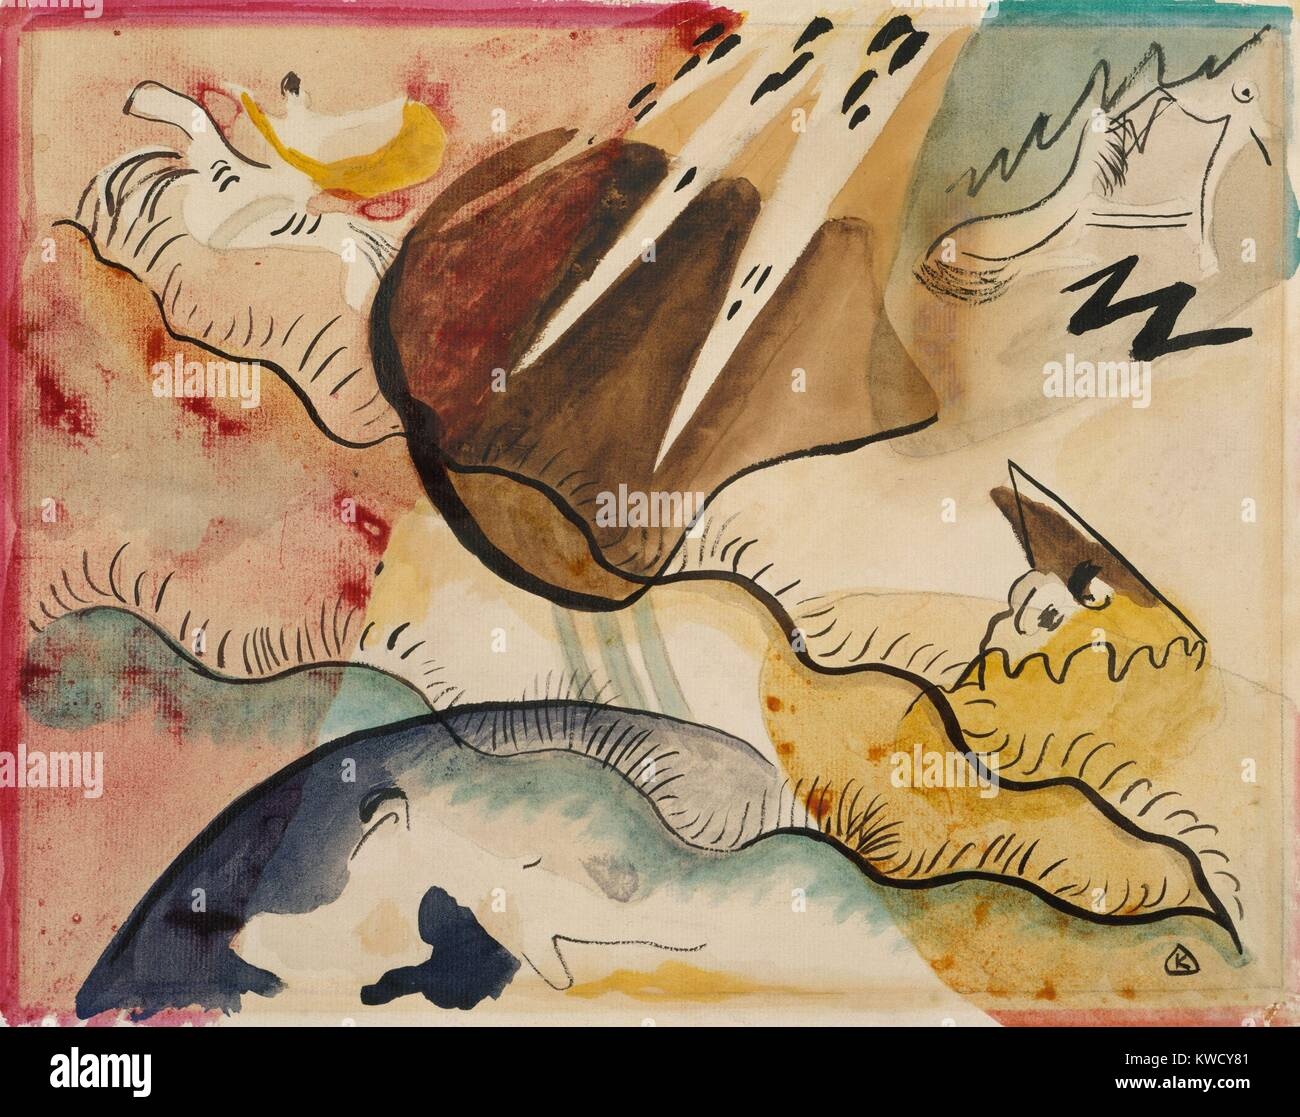 Rain Landscape, by Vasily Kandinsky, 1911, Russian German Expressionist drawing, watercolor on paper. In this abstract - Stock Image